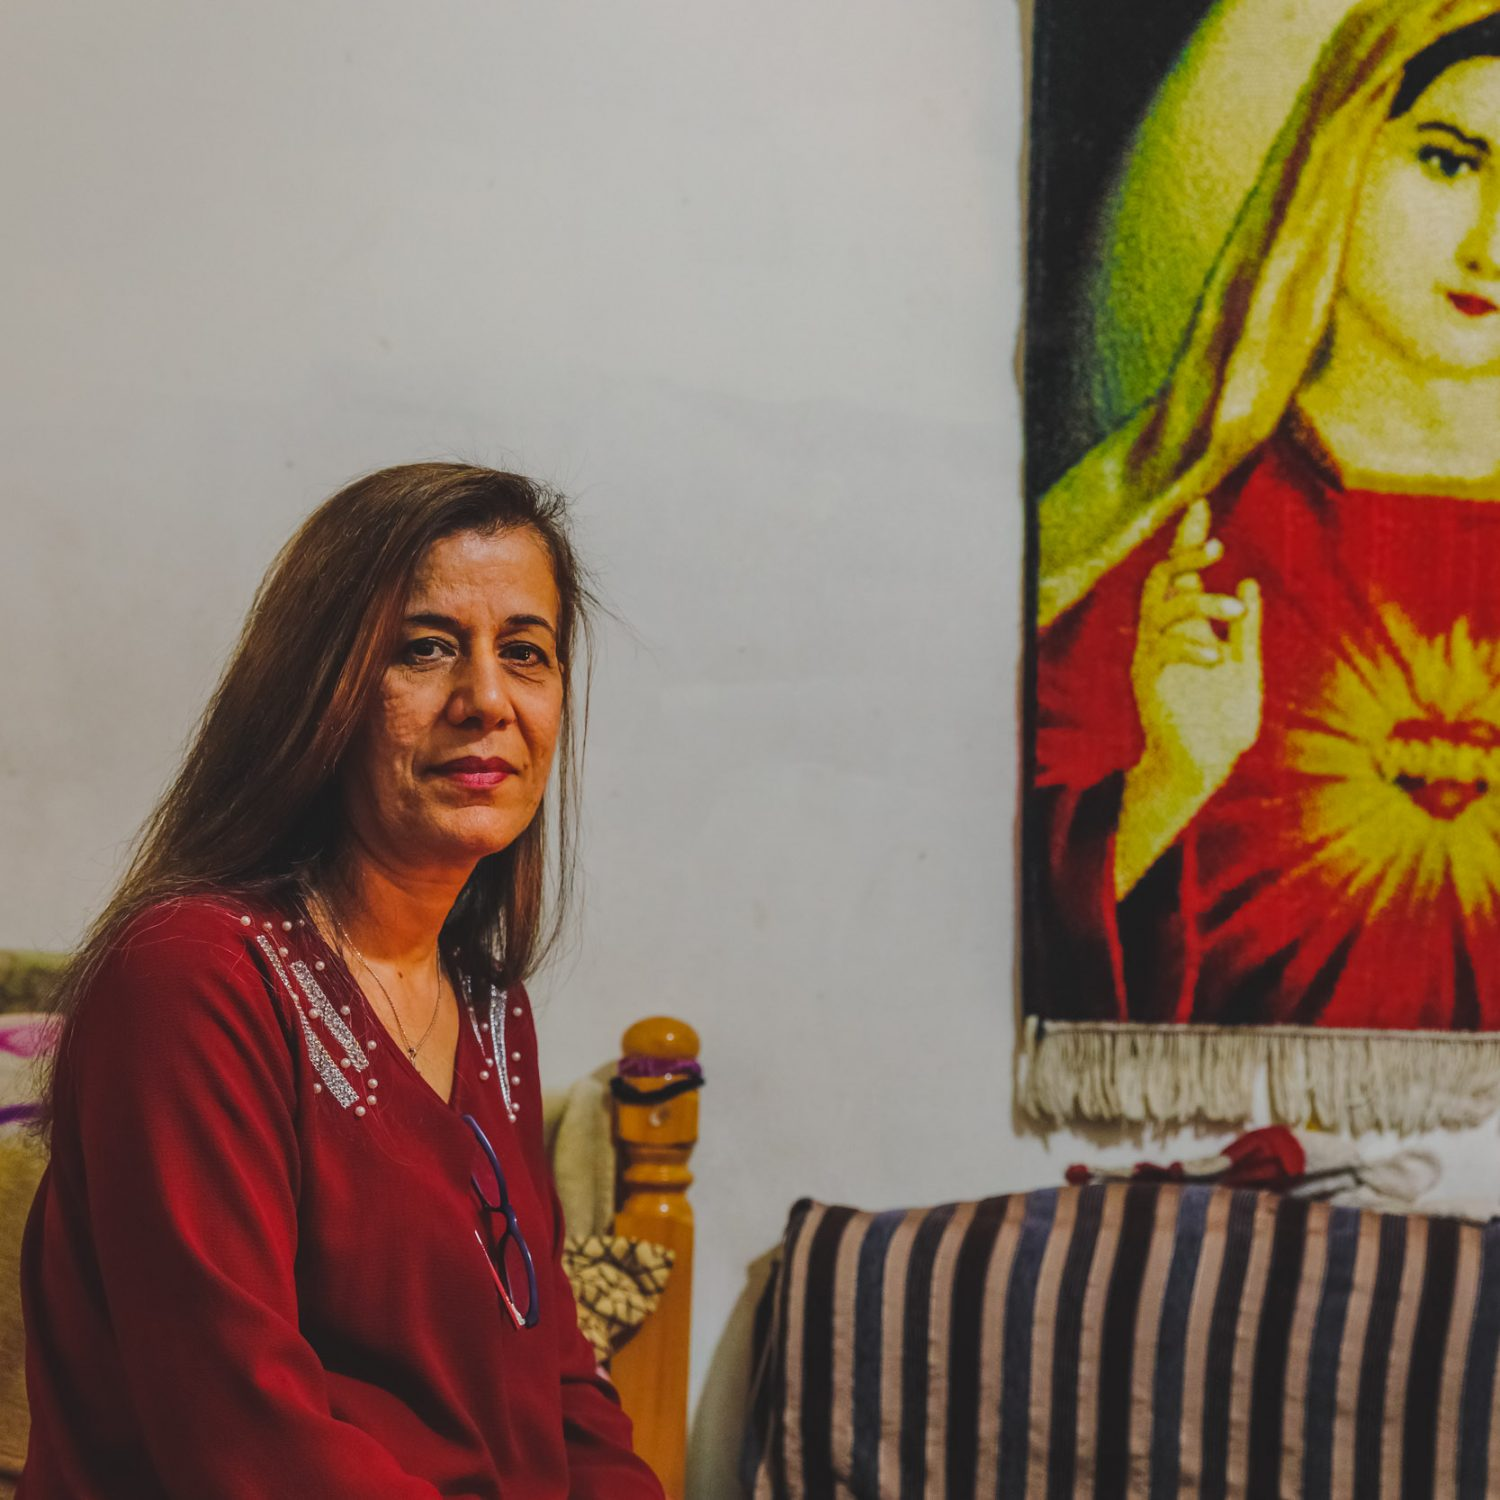 FORCED TO FLEE ISIS: THE EXILE ROUTE OF HAIFA AND HER IRAQI FAMILY